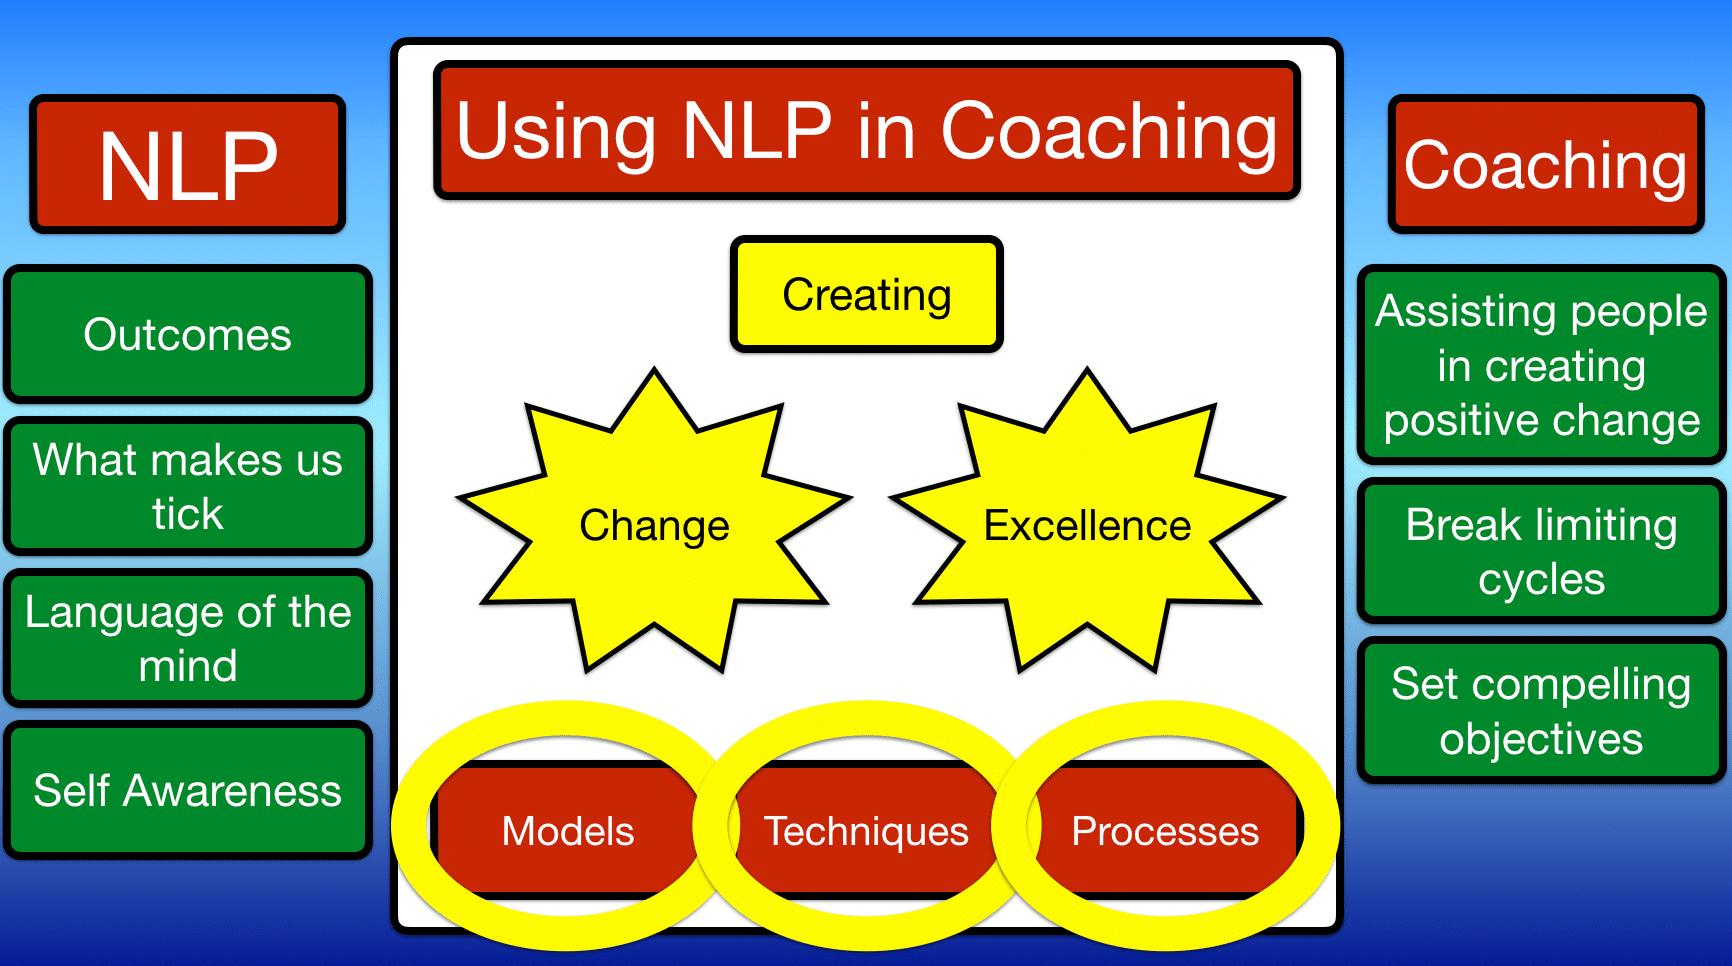 Using NLP in coaching